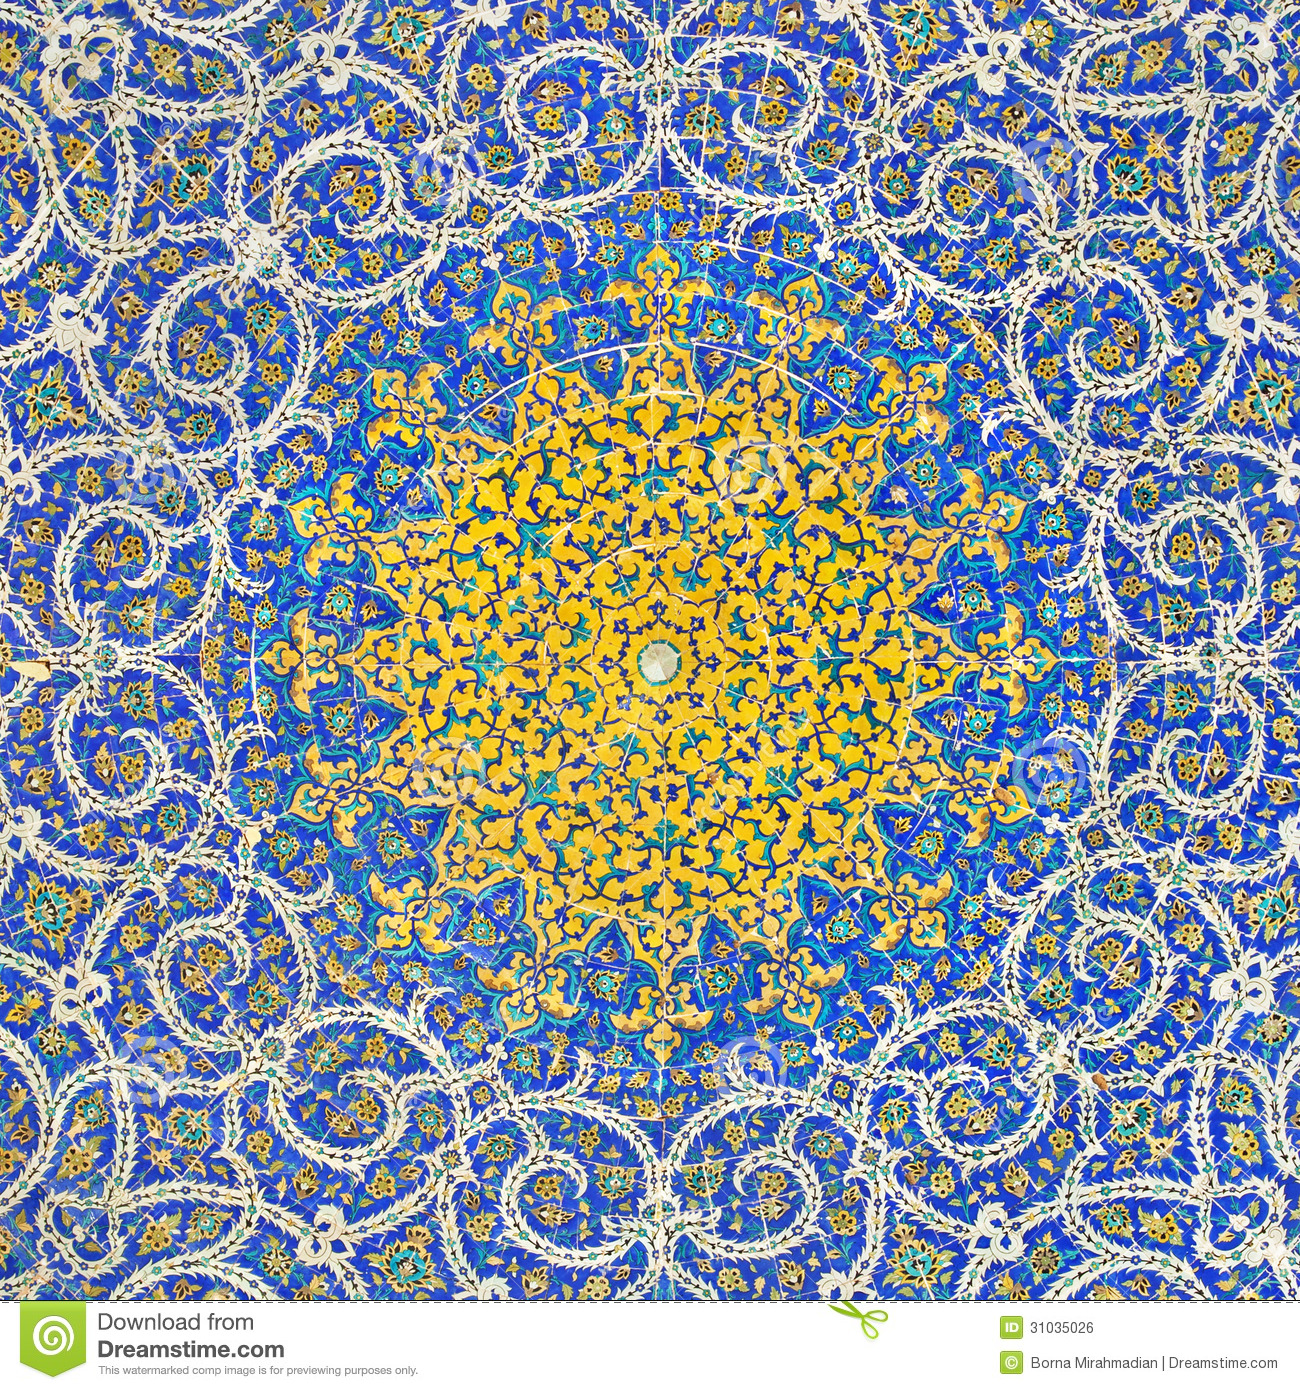 Islamic Persian Motif On Blue Tiles Of A Mosque Royalty Free Stock Image Image 31035026